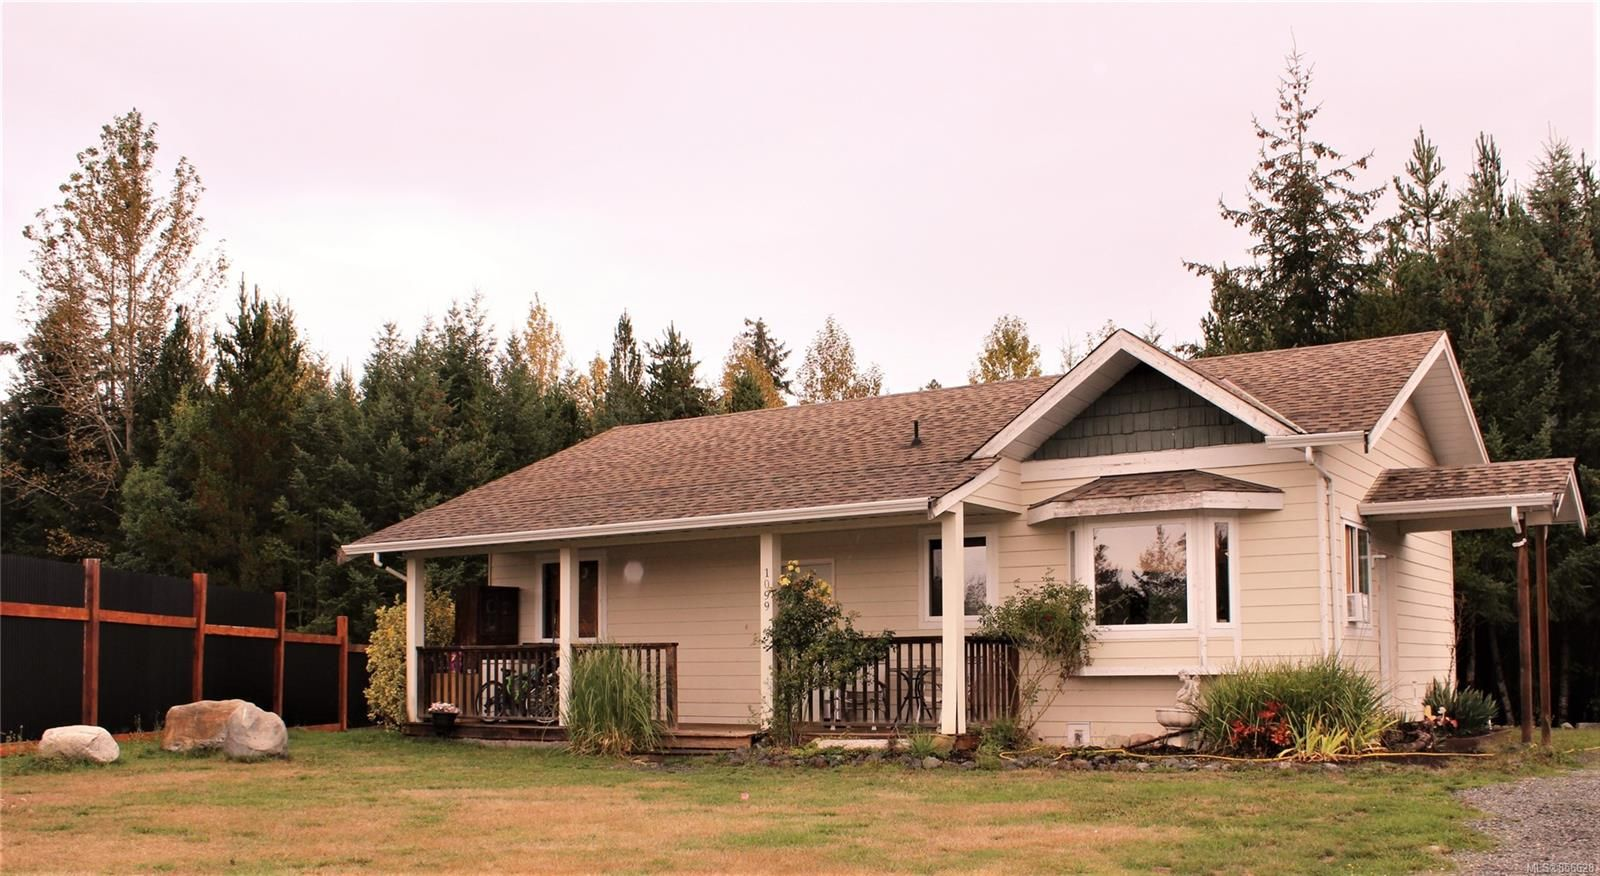 Main Photo: 1099 Sleepy Hollow Pl in : PQ Parksville House for sale (Parksville/Qualicum)  : MLS®# 856628